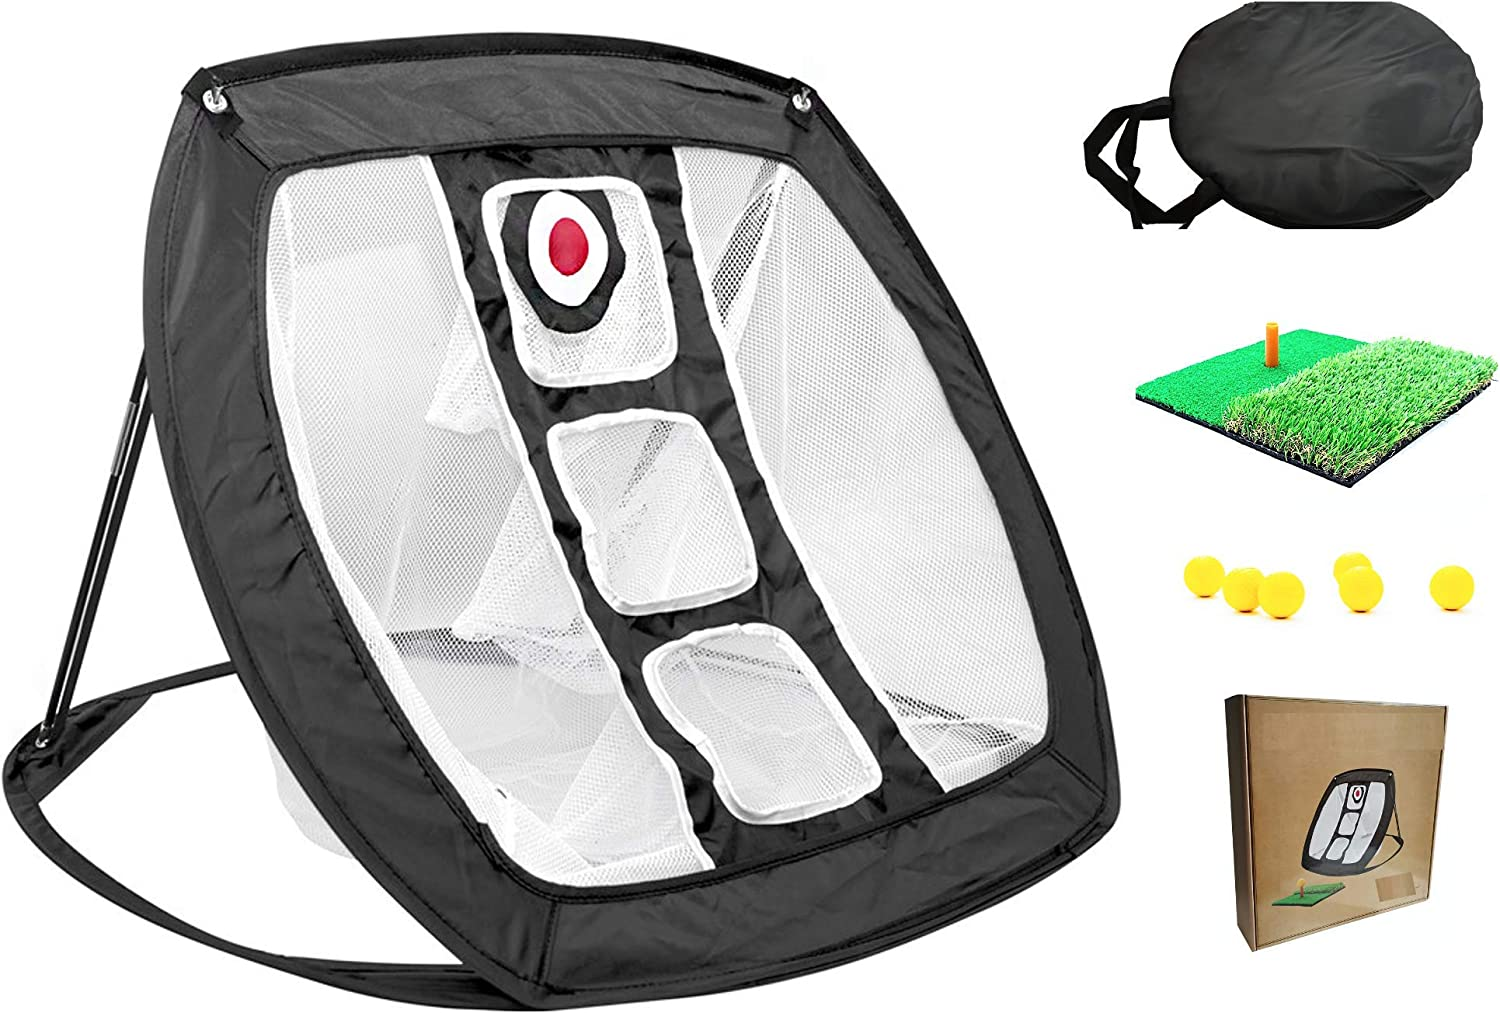 Pop-Open Golf Chipping net Trainer with Target for in & Outdoor use. Great for Beginners to pros at Home, The Backyard & Office for Birthdays, Christmas, Fathers/Bachelor Parties & Games